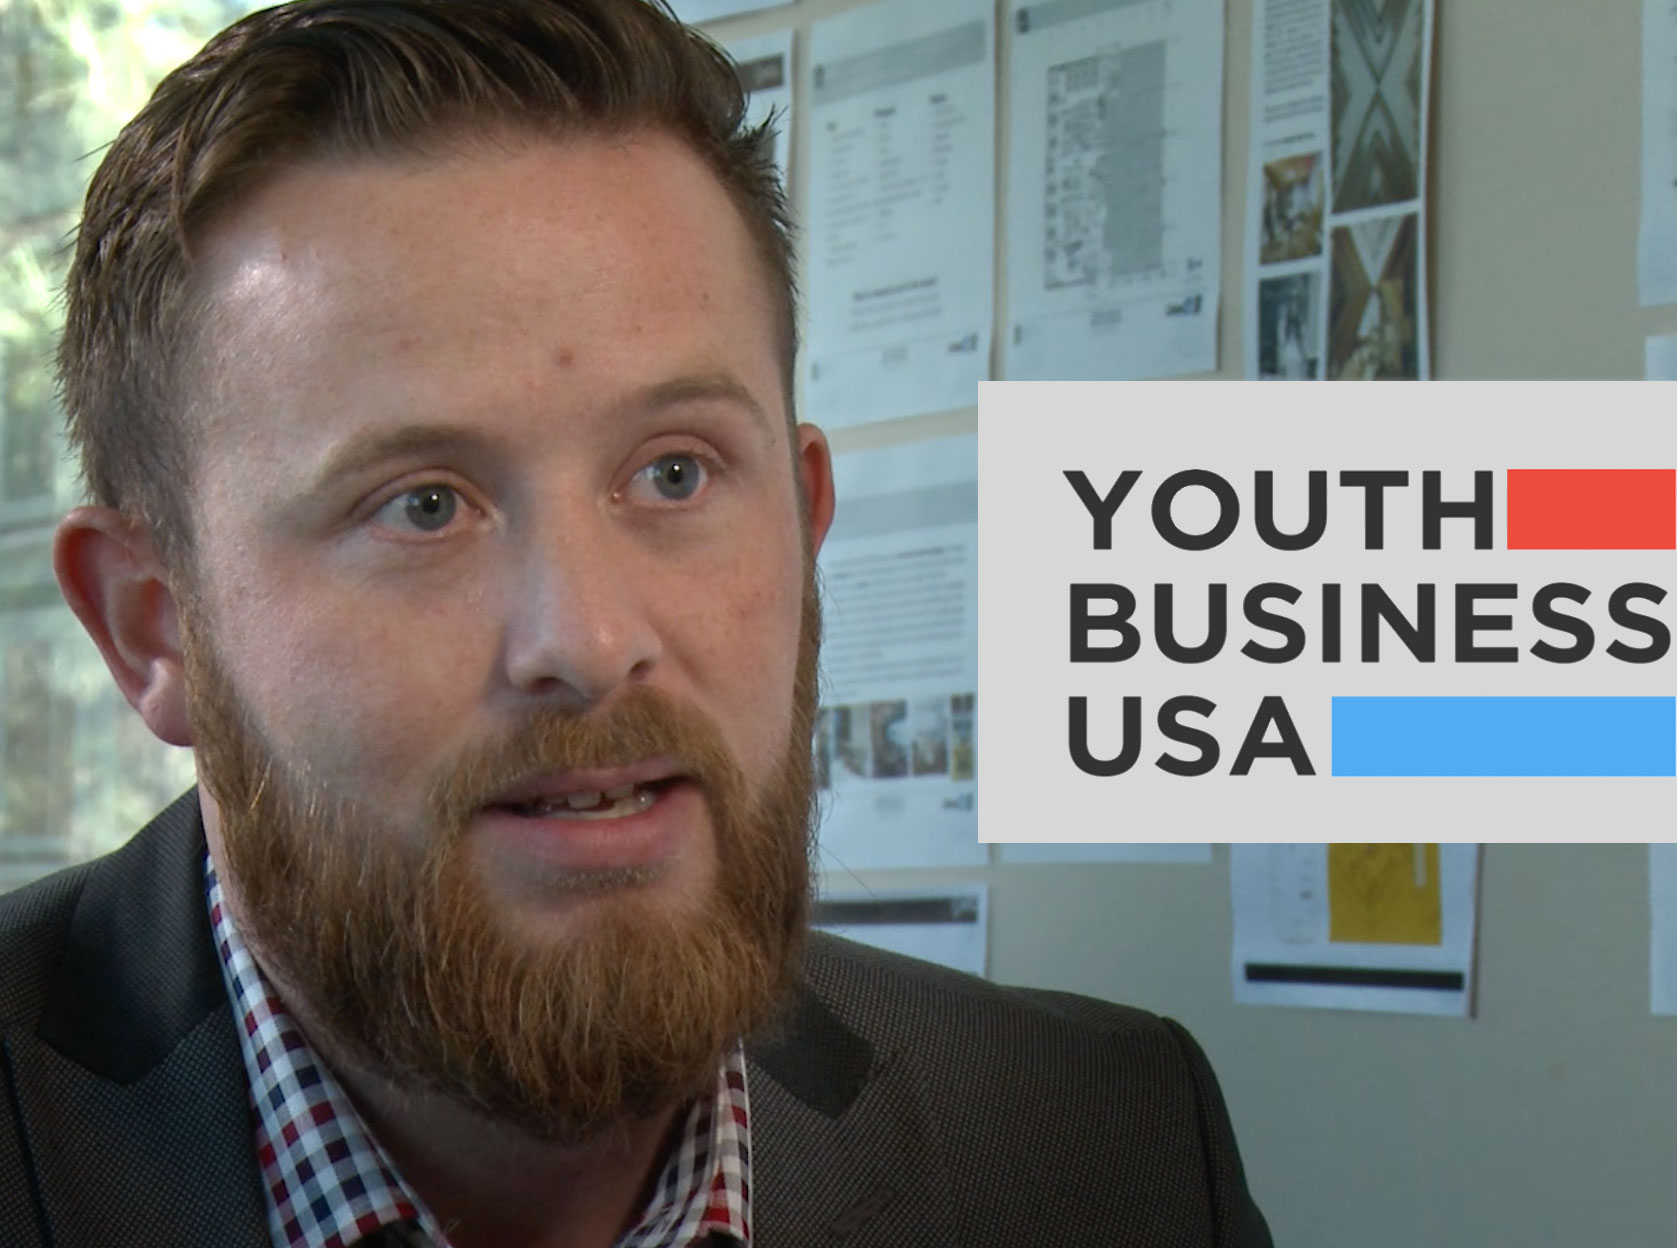 Youth Business USA